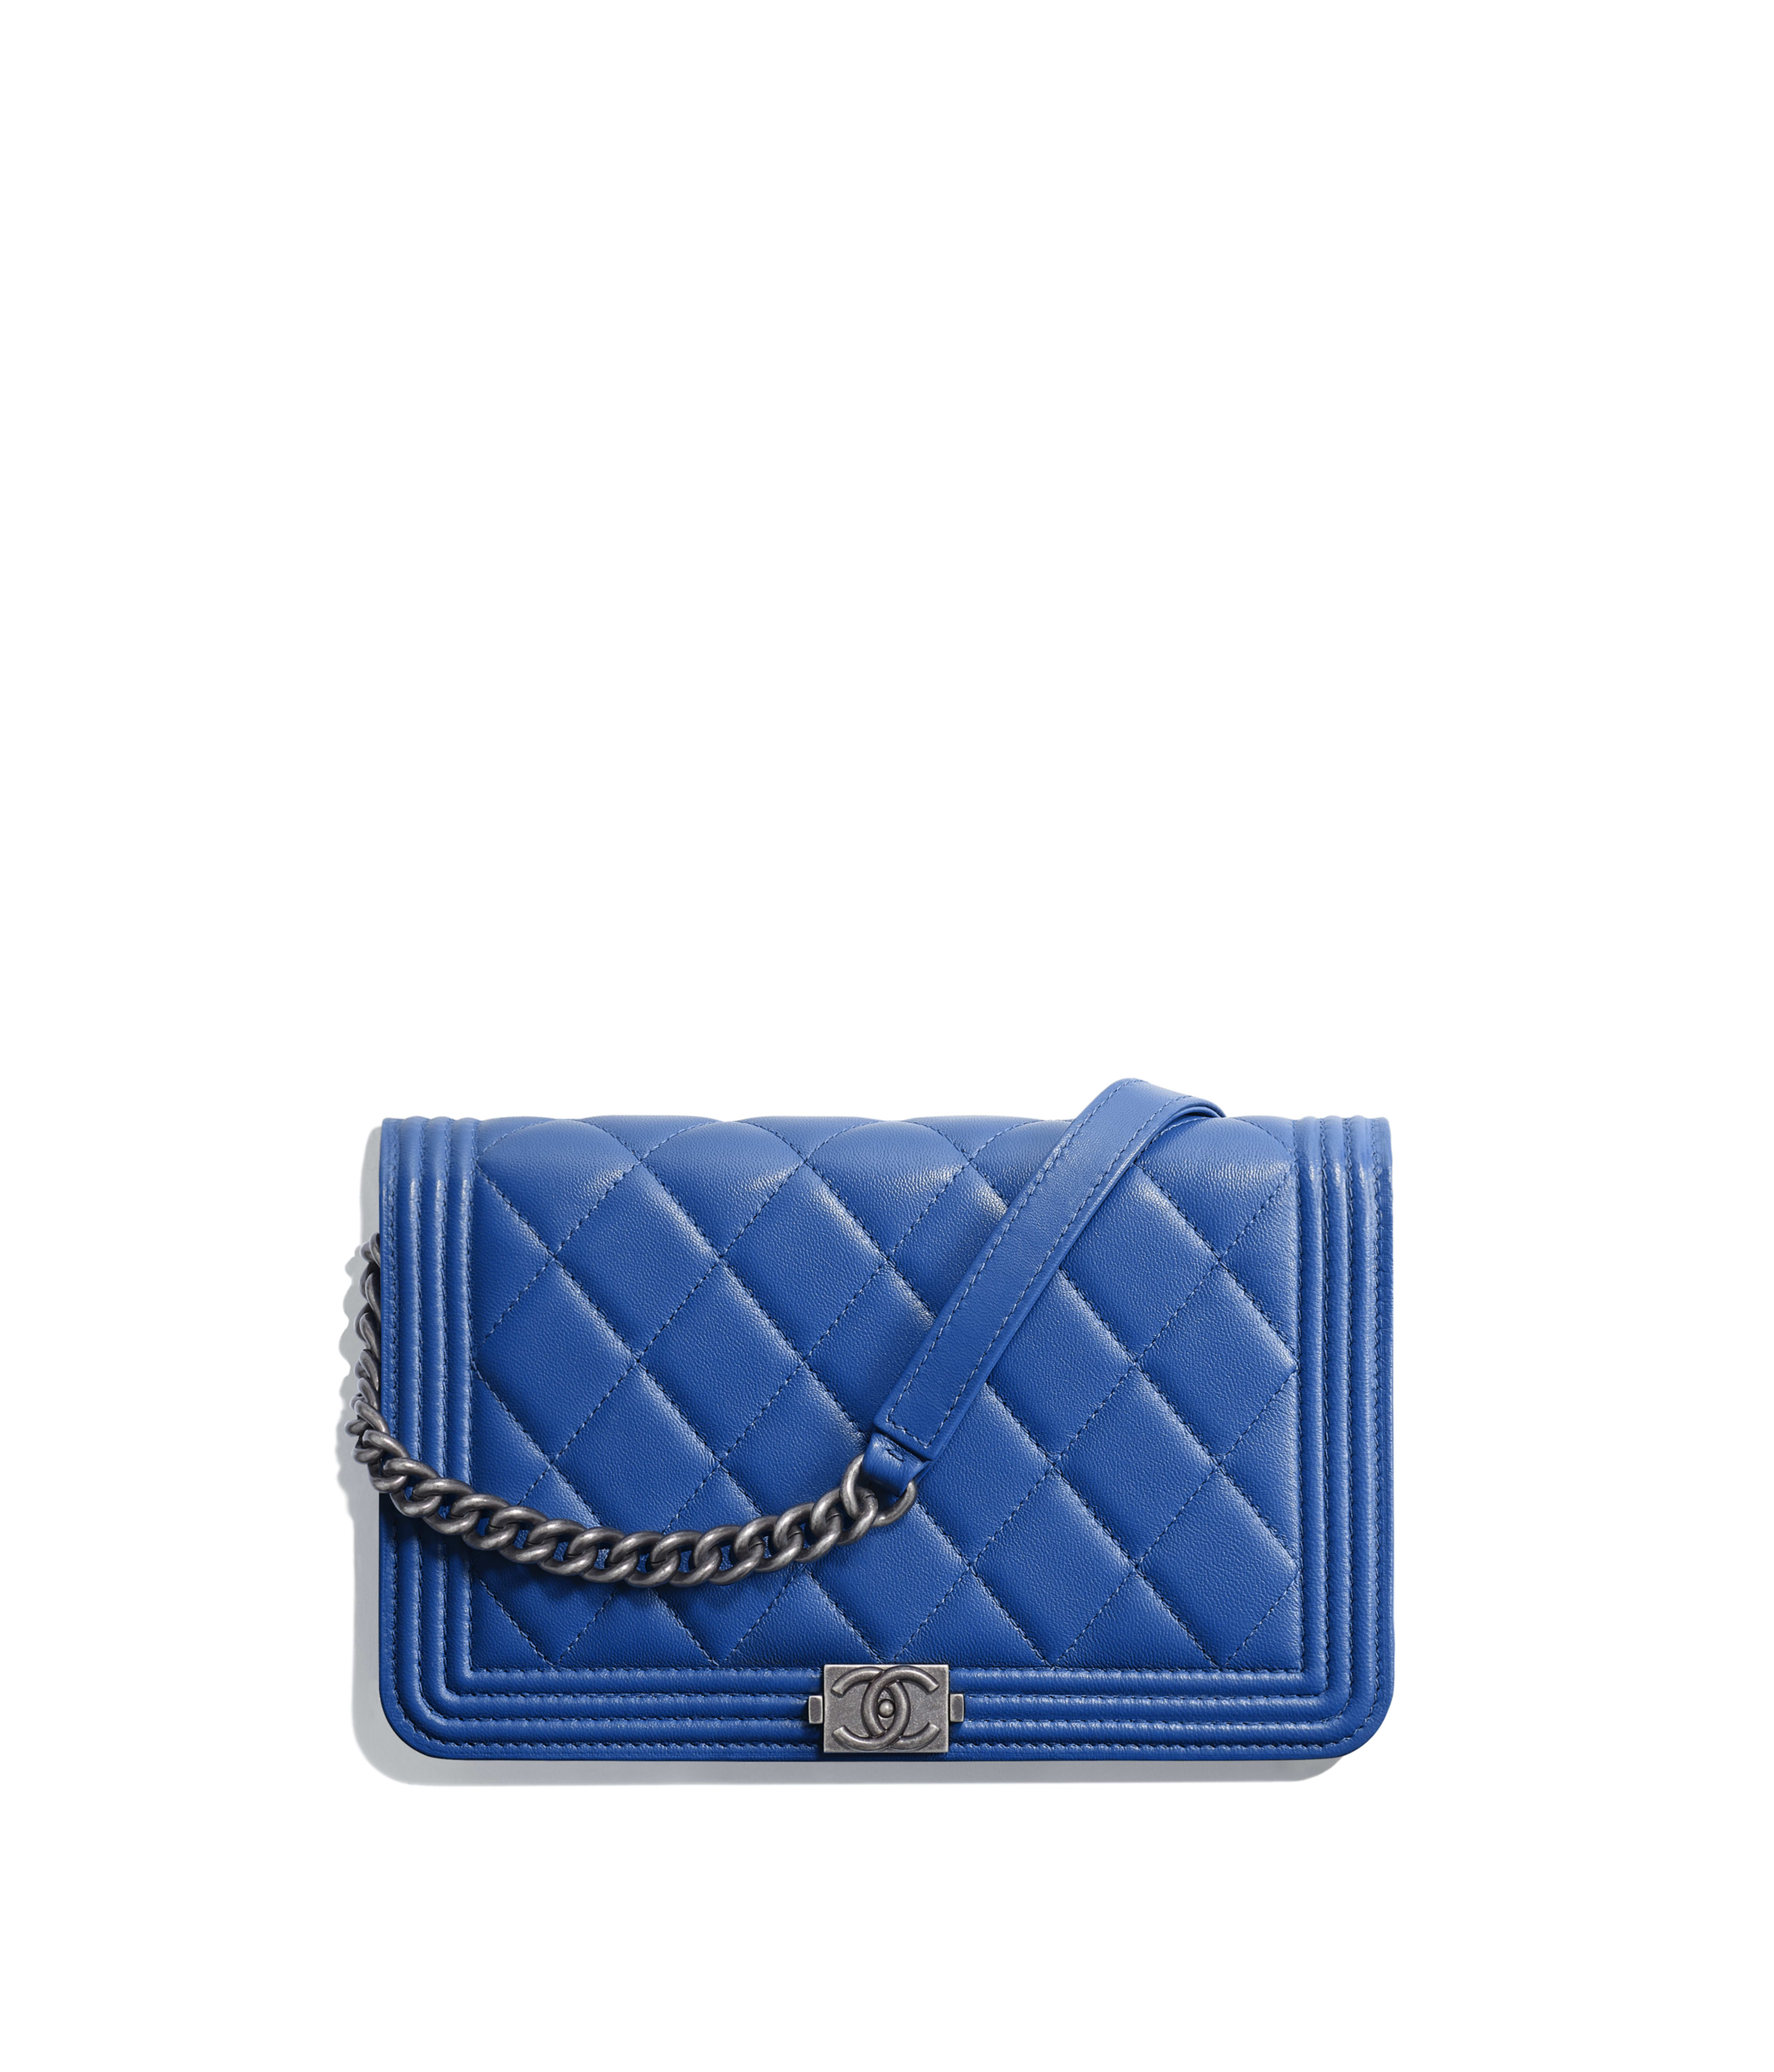 BOY CHANEL Wallet on Chain Lambskin   Ruthenium-Finish Metal, Blue Ref.  A81969Y046385B646 2a11fc86f7